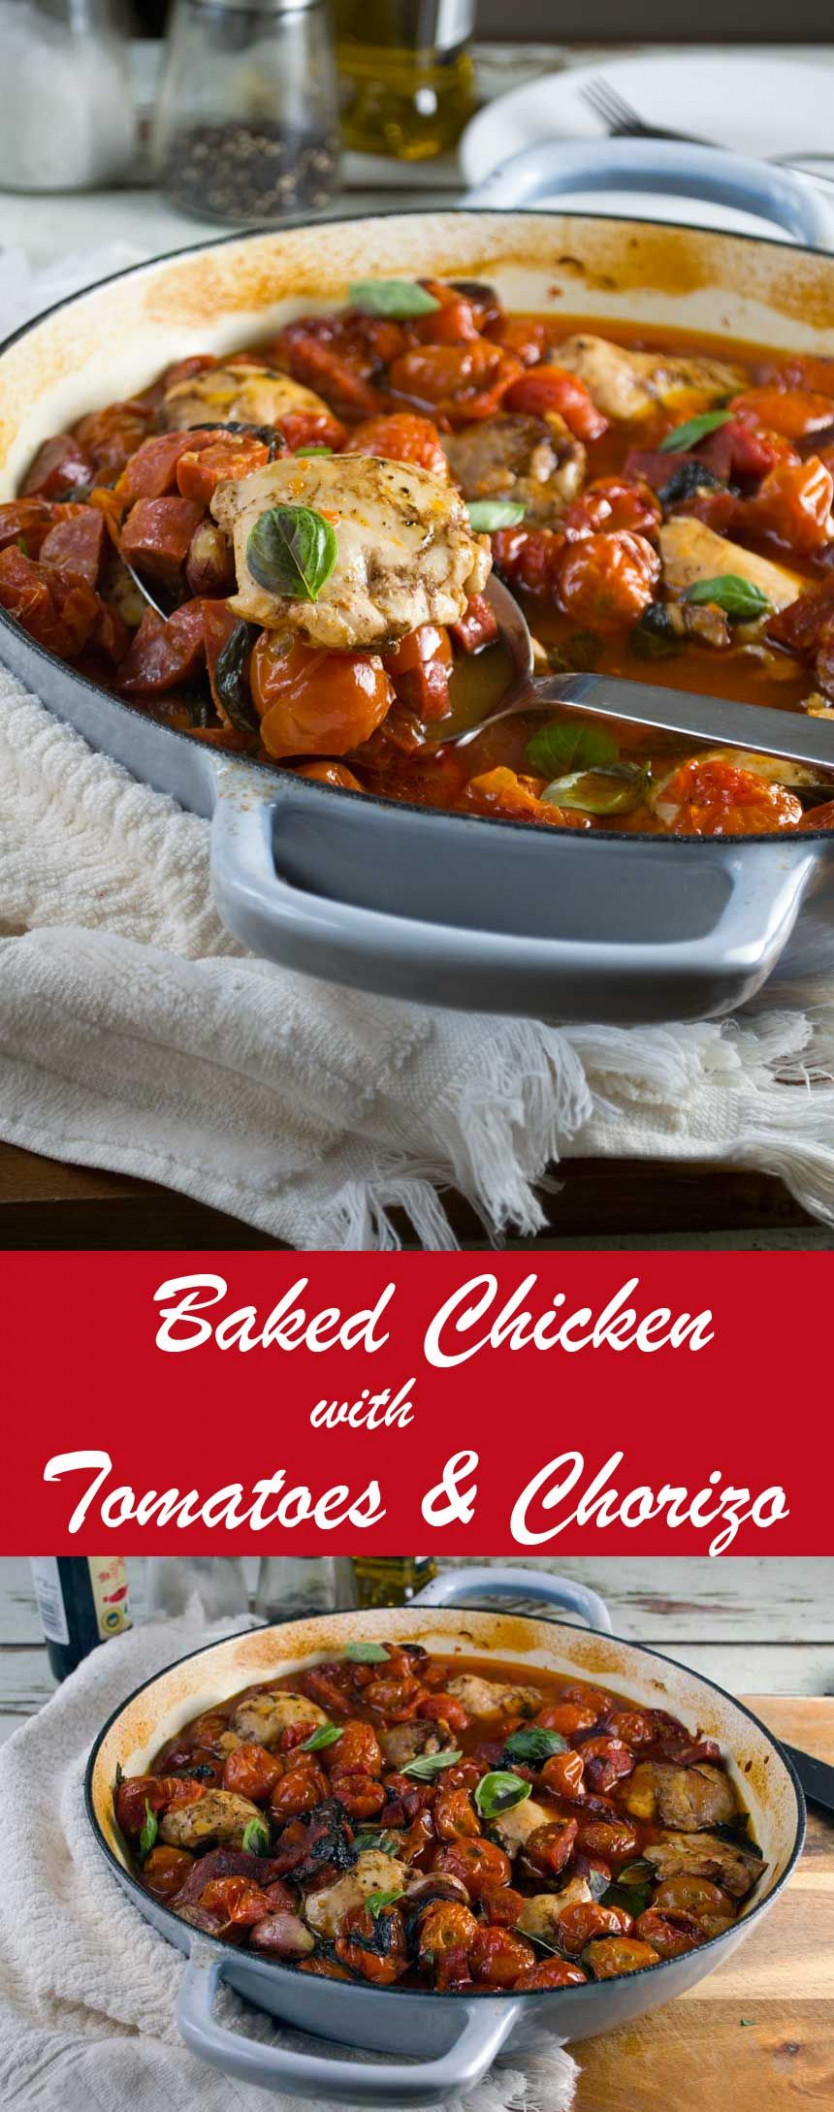 One-pan baked chicken with chorizo and tomatoes - chicken recipes on pinterest